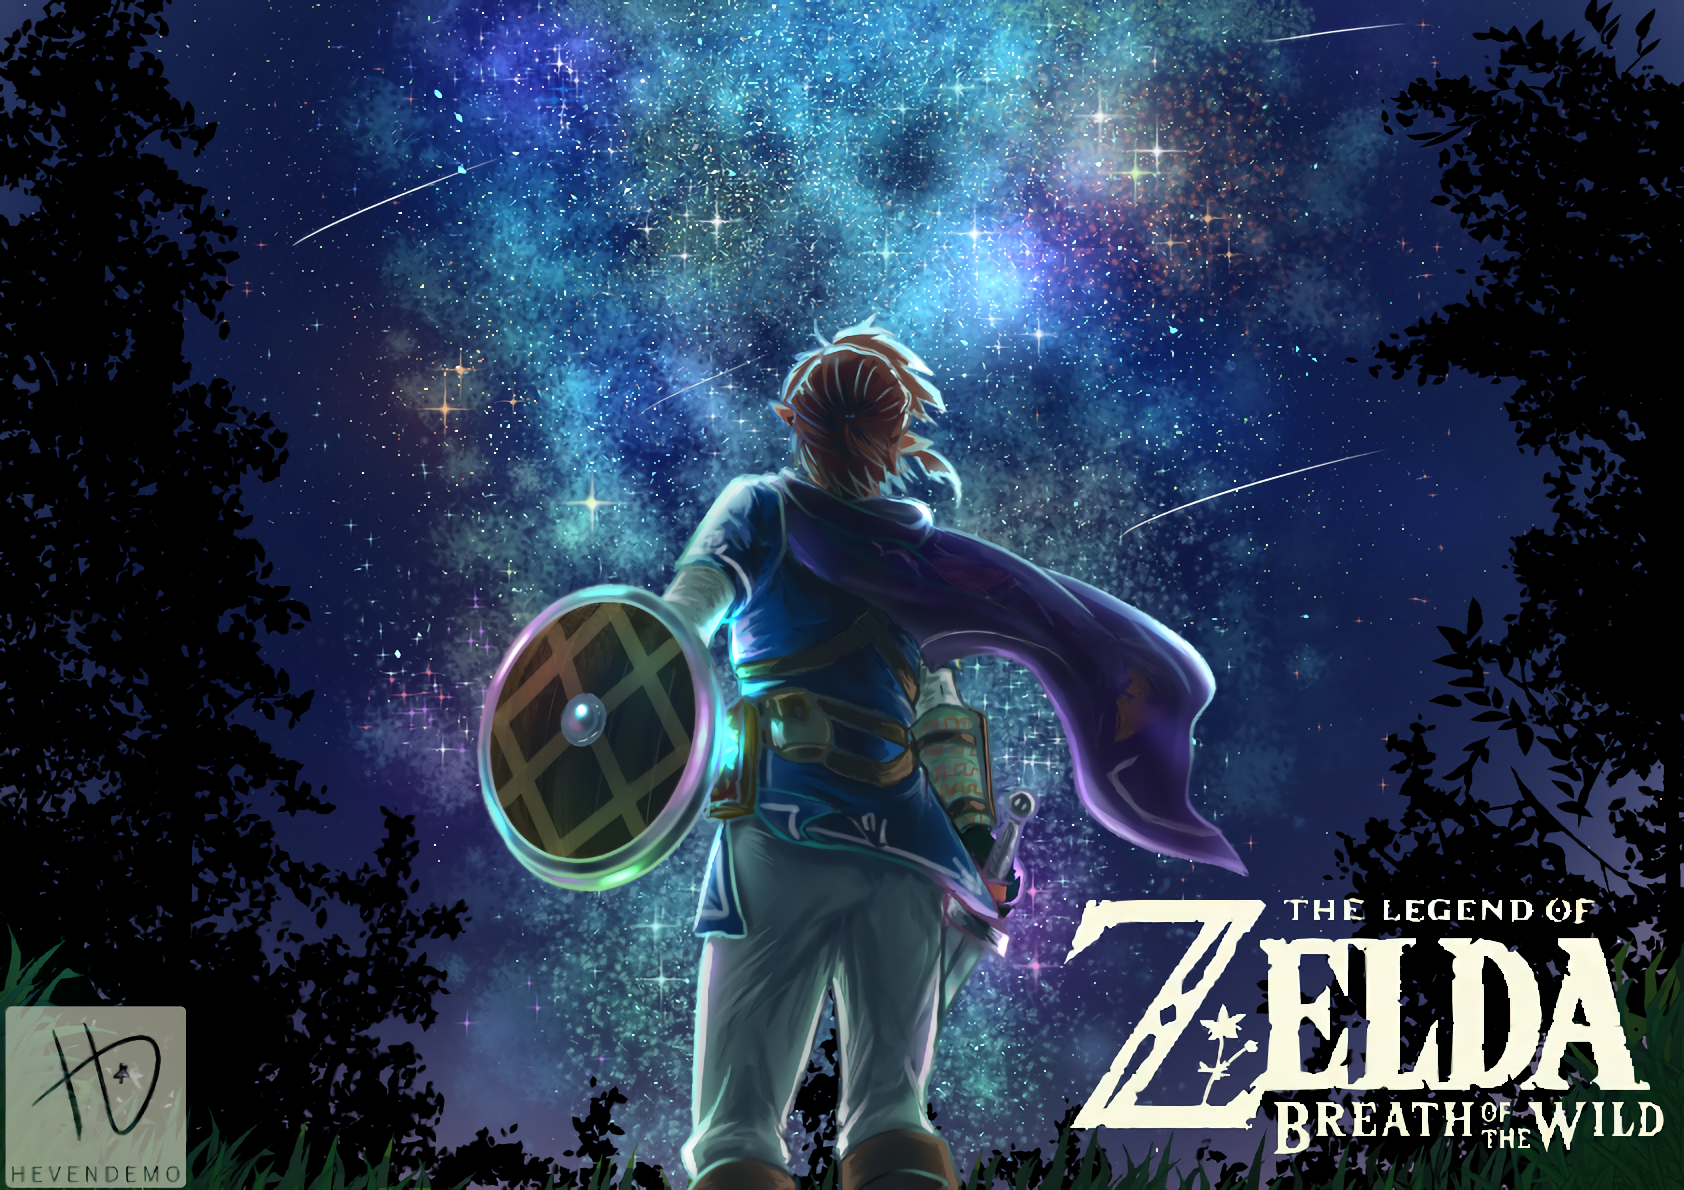 The Legend Of Zelda: Breath Of The Wild Wallpaper And